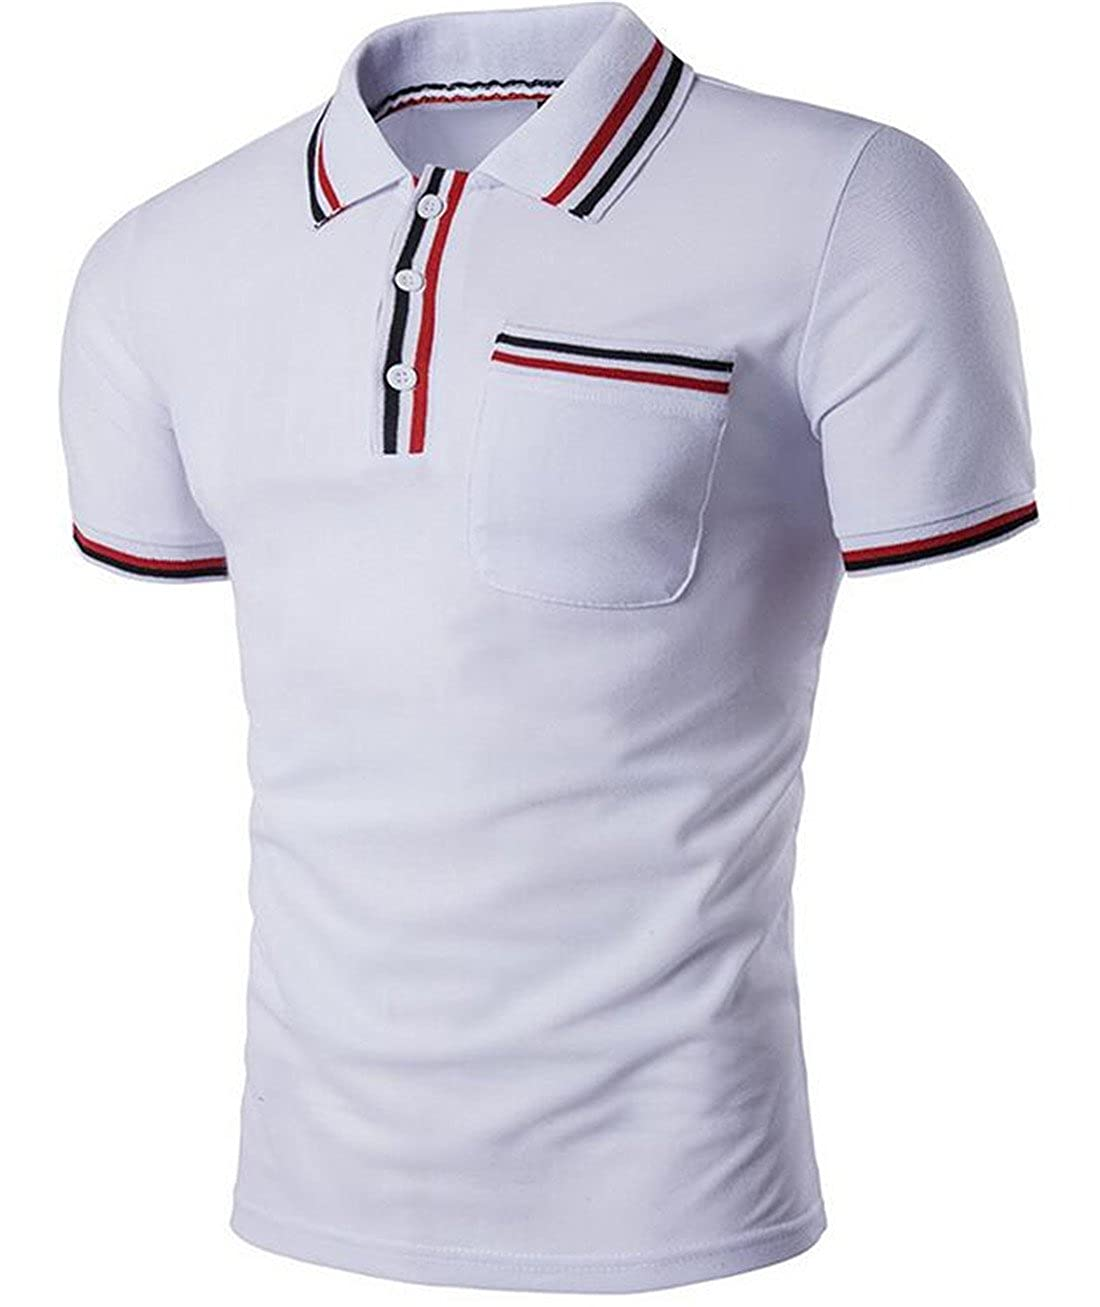 SELX Men Casual Short Sleeves Button Patched Pocket Slim Fit Polo Shirt